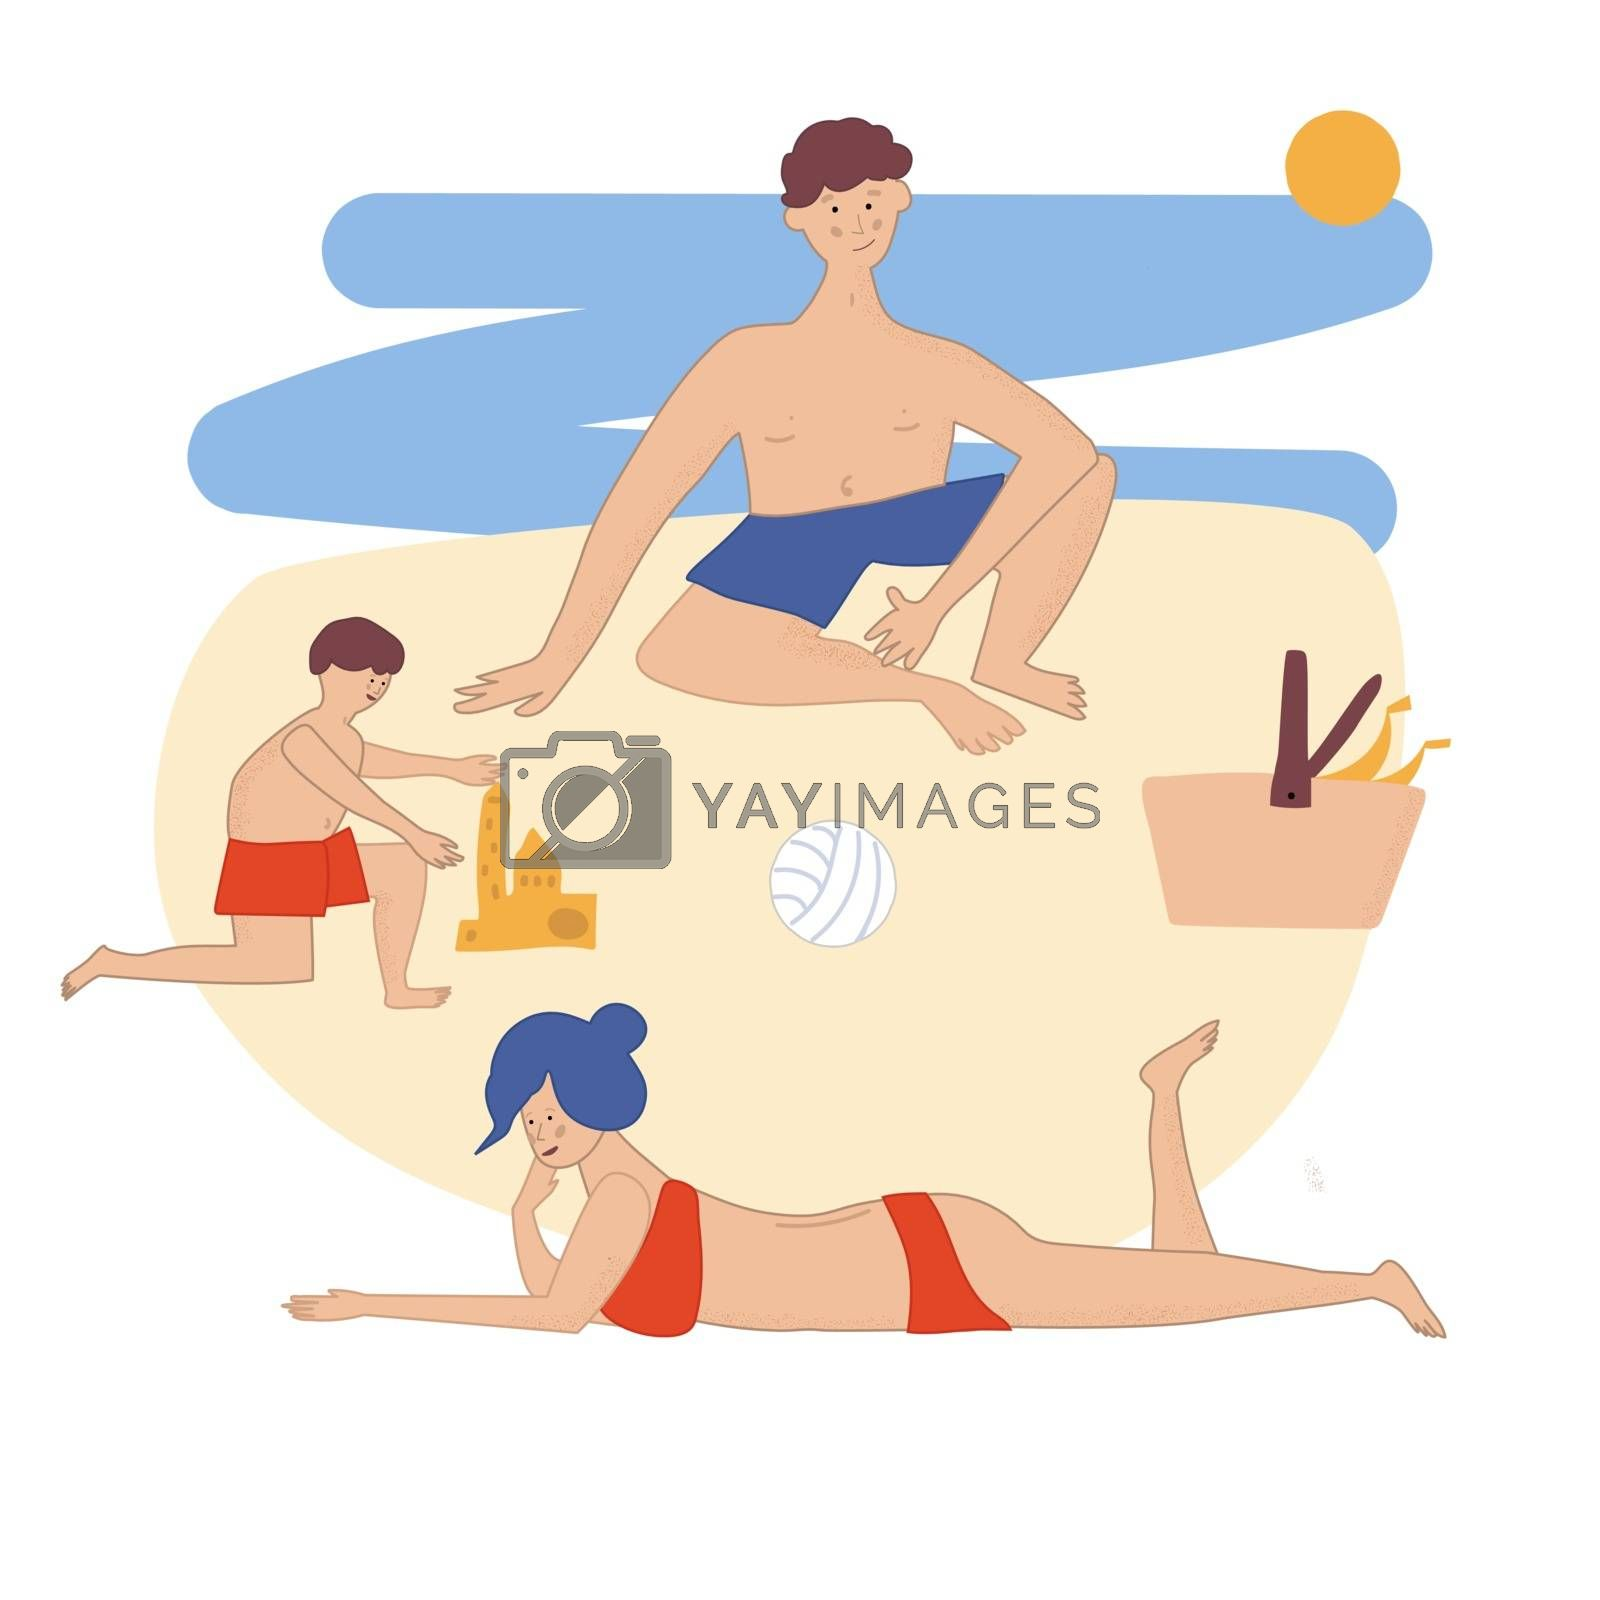 Family resting on a picnic on the beach. Mom and dad play with their children by the sea. Parents with children are happy and eat food on the seashore. A child builds a sand castle. Vector illustration in hand drawn style